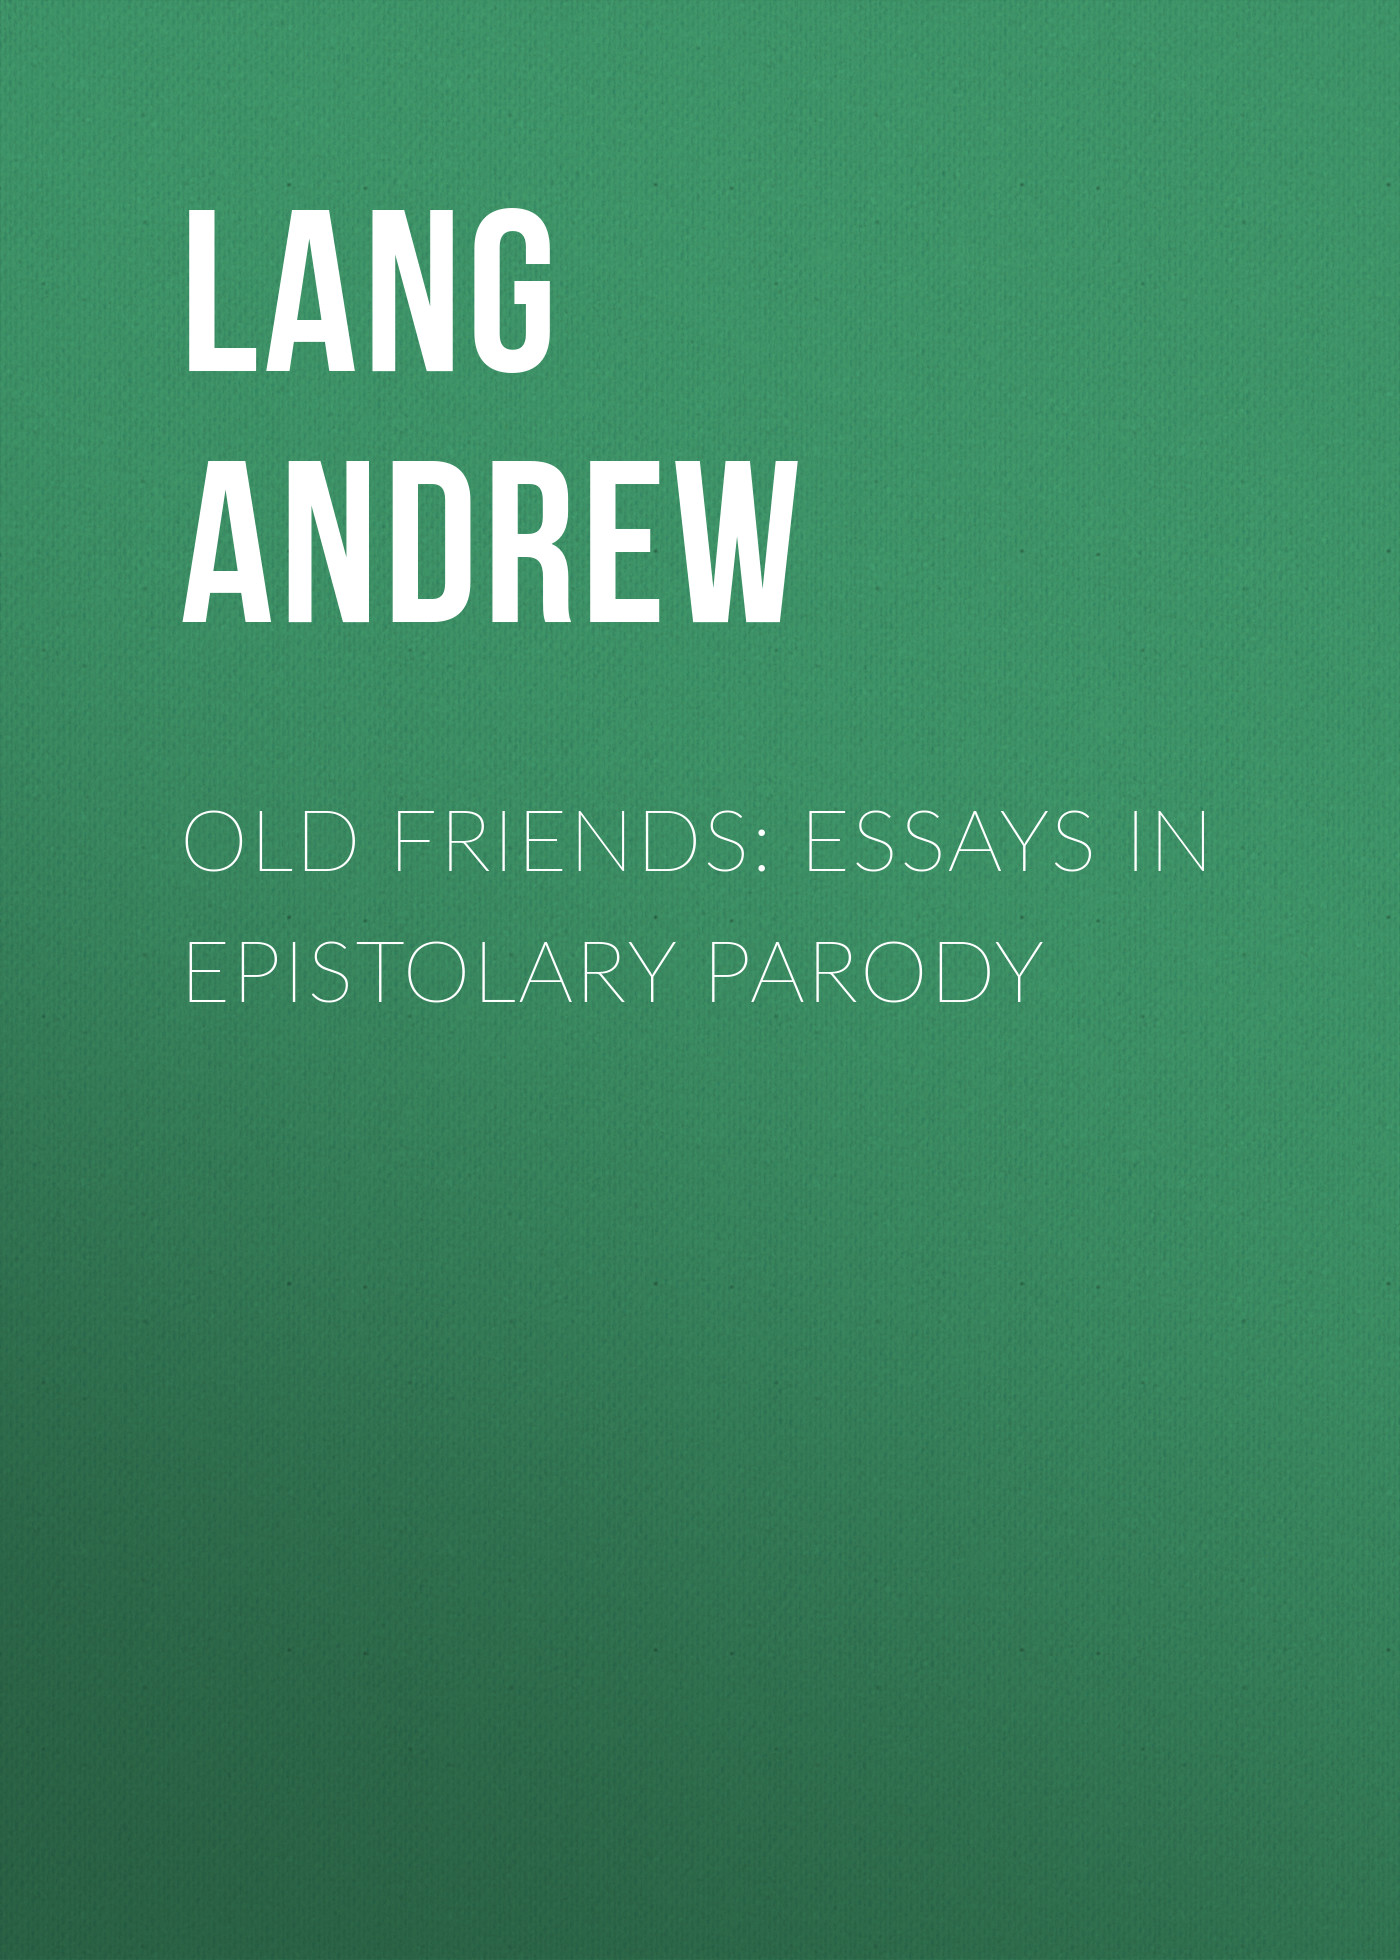 Old Friends: Essays in Epistolary Parody